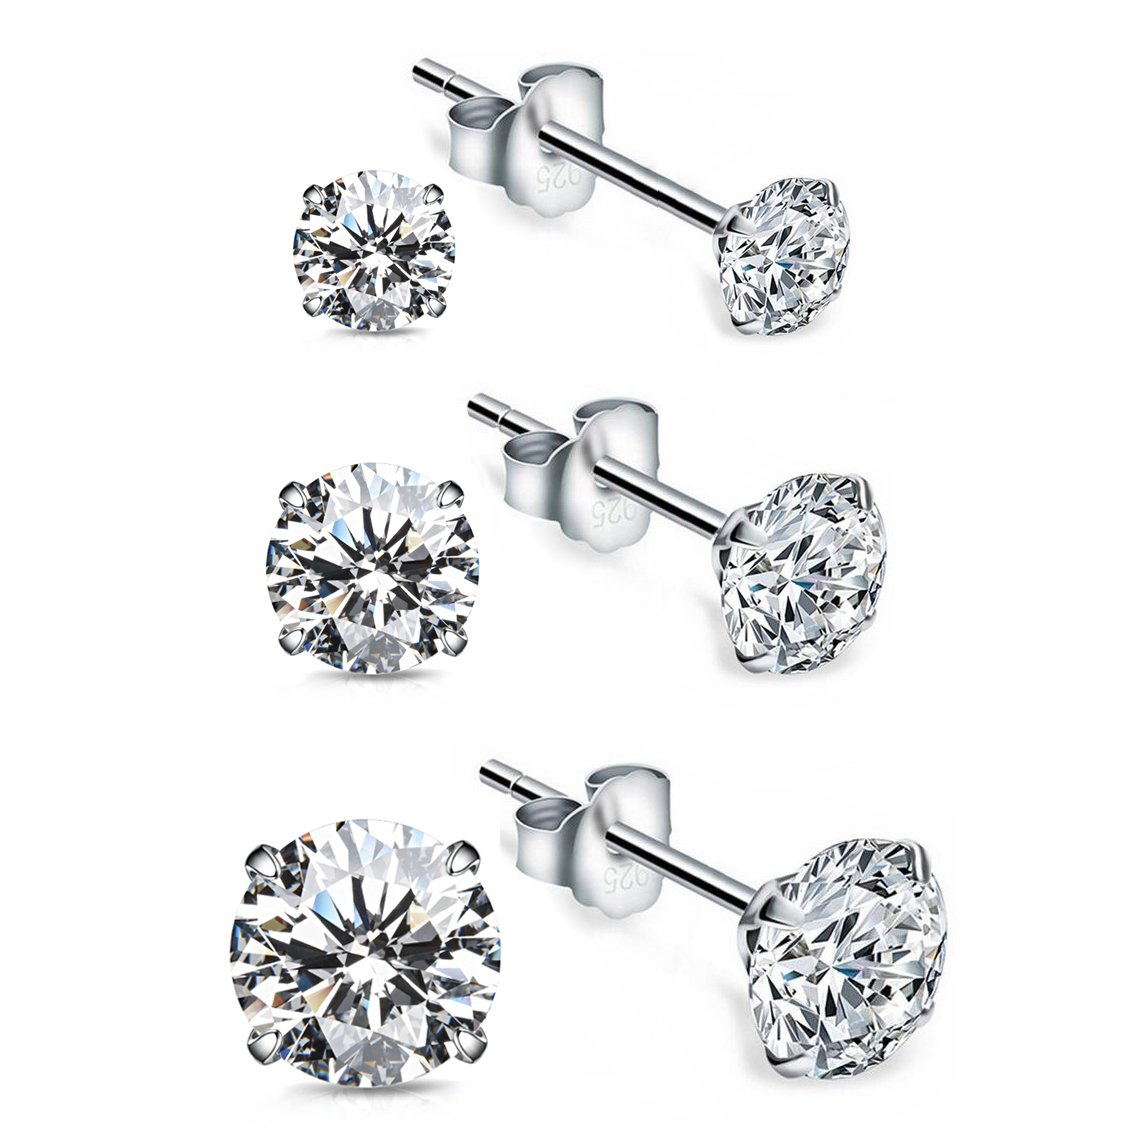 Stud Earrings With Cubic Zirconia Faux Diamond And 18K White Gold Plated Sterling Silver(3 Pairs